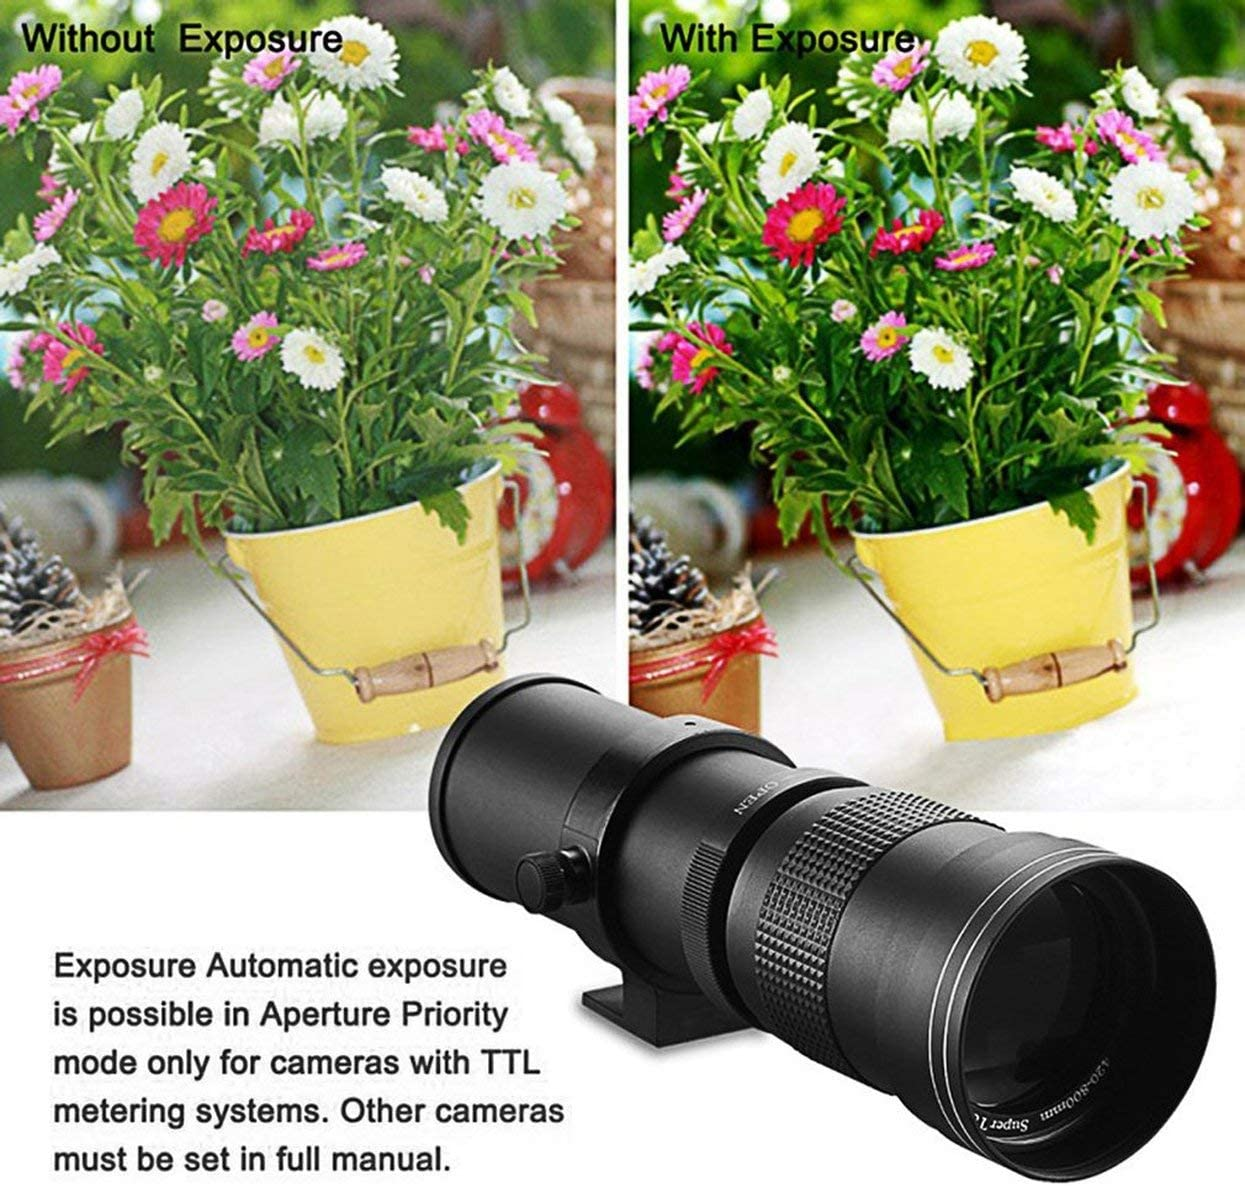 Detectorcatty 420-800mm f//8.3-16 Telephoto Lens for DSLR T Mount Camera D7200 D5300 D5200 D3300 D3200 D3000 D7100 D7000